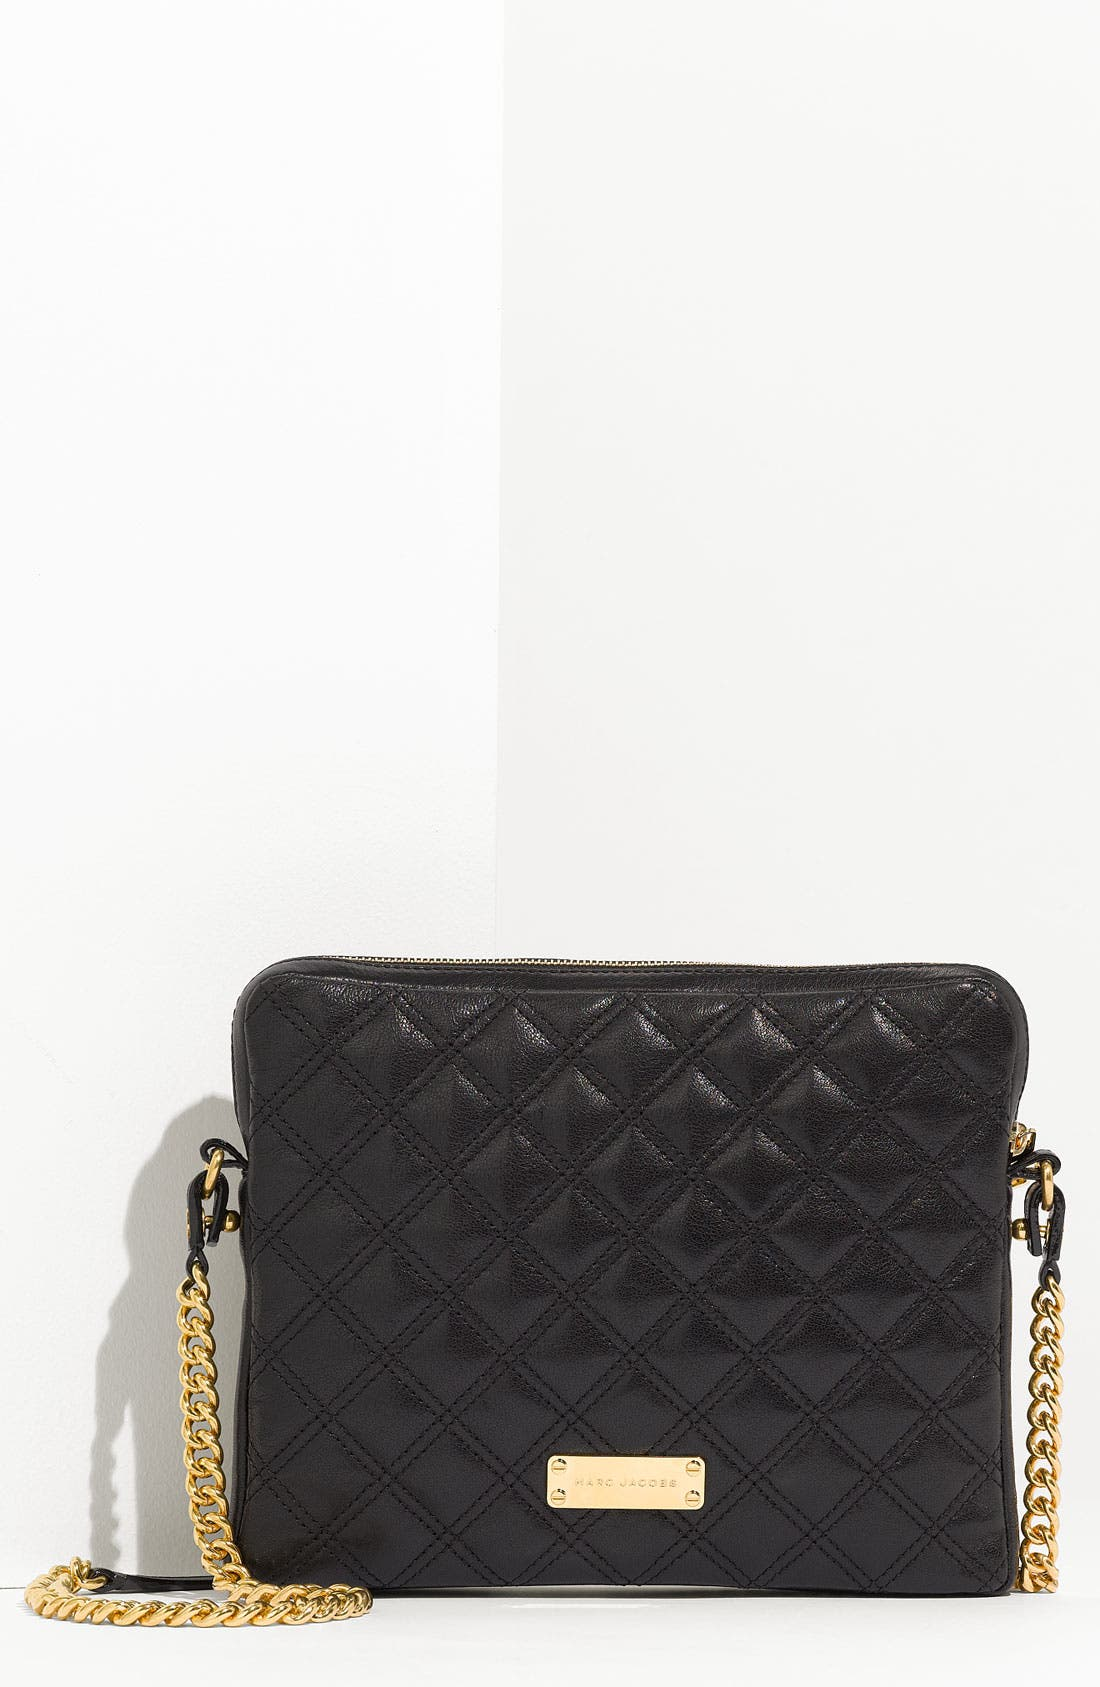 Alternate Image 1 Selected - MARC JACOBS 'Quilting' Leather Crossbody iPad Case